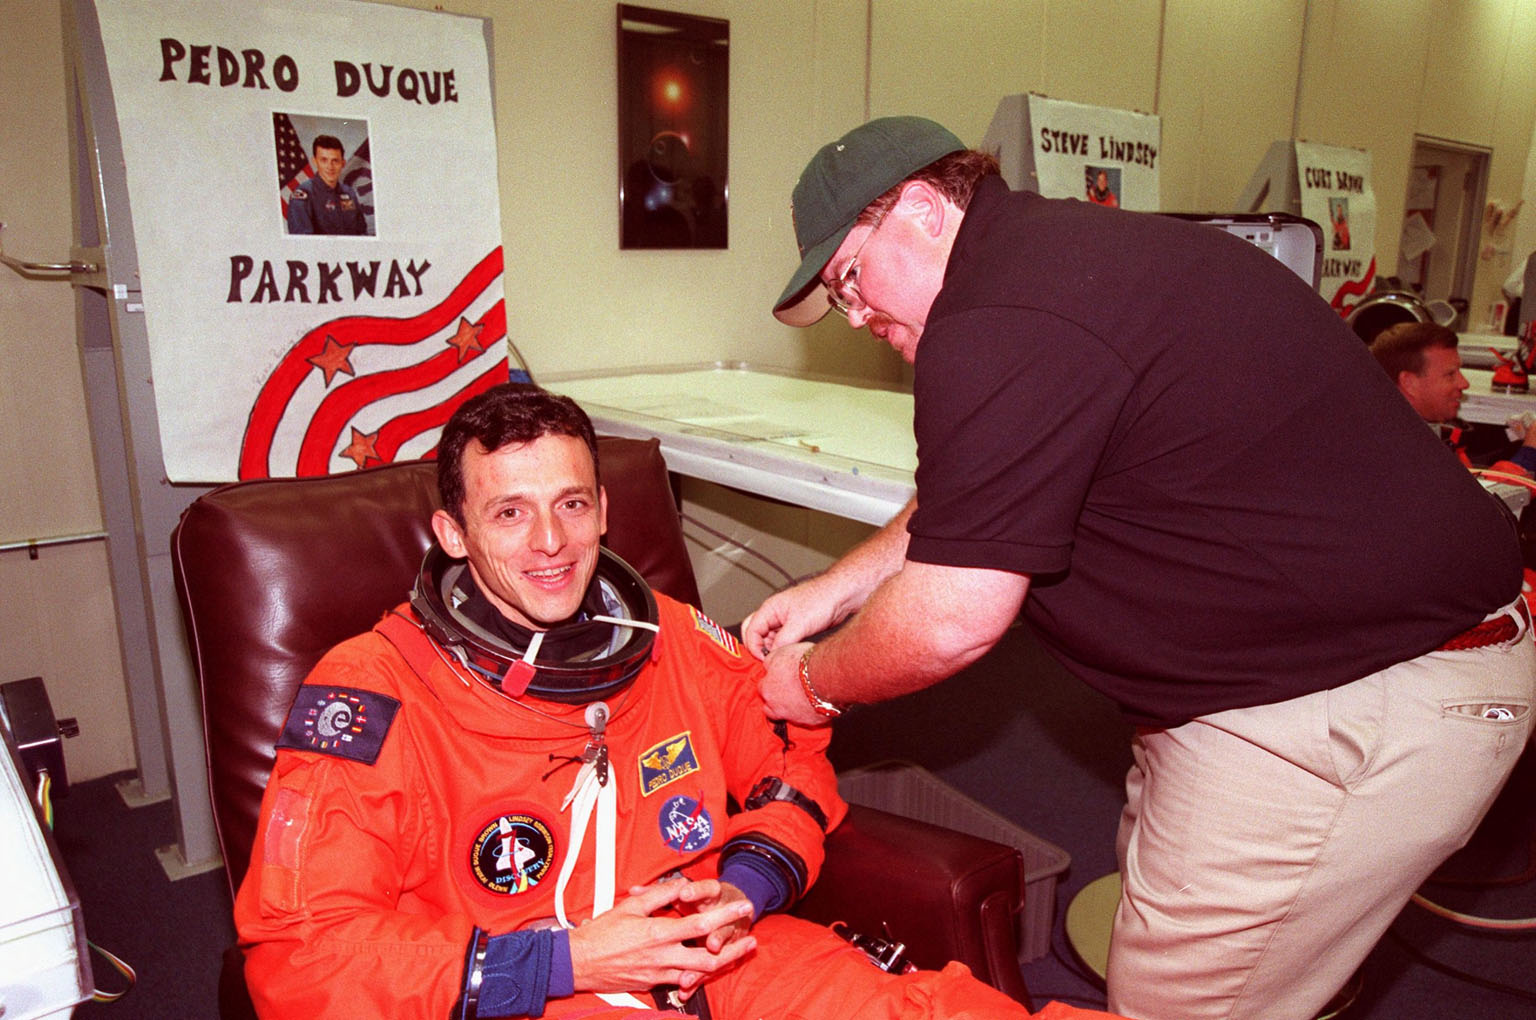 STS-95 Mission Specialist Pedro Duque of Spain, with the European Space Agency, is helped with his flight suit by suit tech Tommy McDonald in the Operations and Checkout Building. The final fitting takes place prior to the crew walkout and transport to Launch Pad 39B. Targeted for launch at 2 p.m. EST on Oct. 29, the mission is expected to last 8 days, 21 hours and 49 minutes, and return to KSC at 11:49 a.m. EST on Nov. 7. The STS-95 mission includes research payloads such as the Spartan solar-observing deployable spacecraft, the Hubble Space Telescope Orbital Systems Test Platform, the International Extreme Ultraviolet Hitchhiker, as well as the SPACEHAB single module with experiments on space flight and the aging process